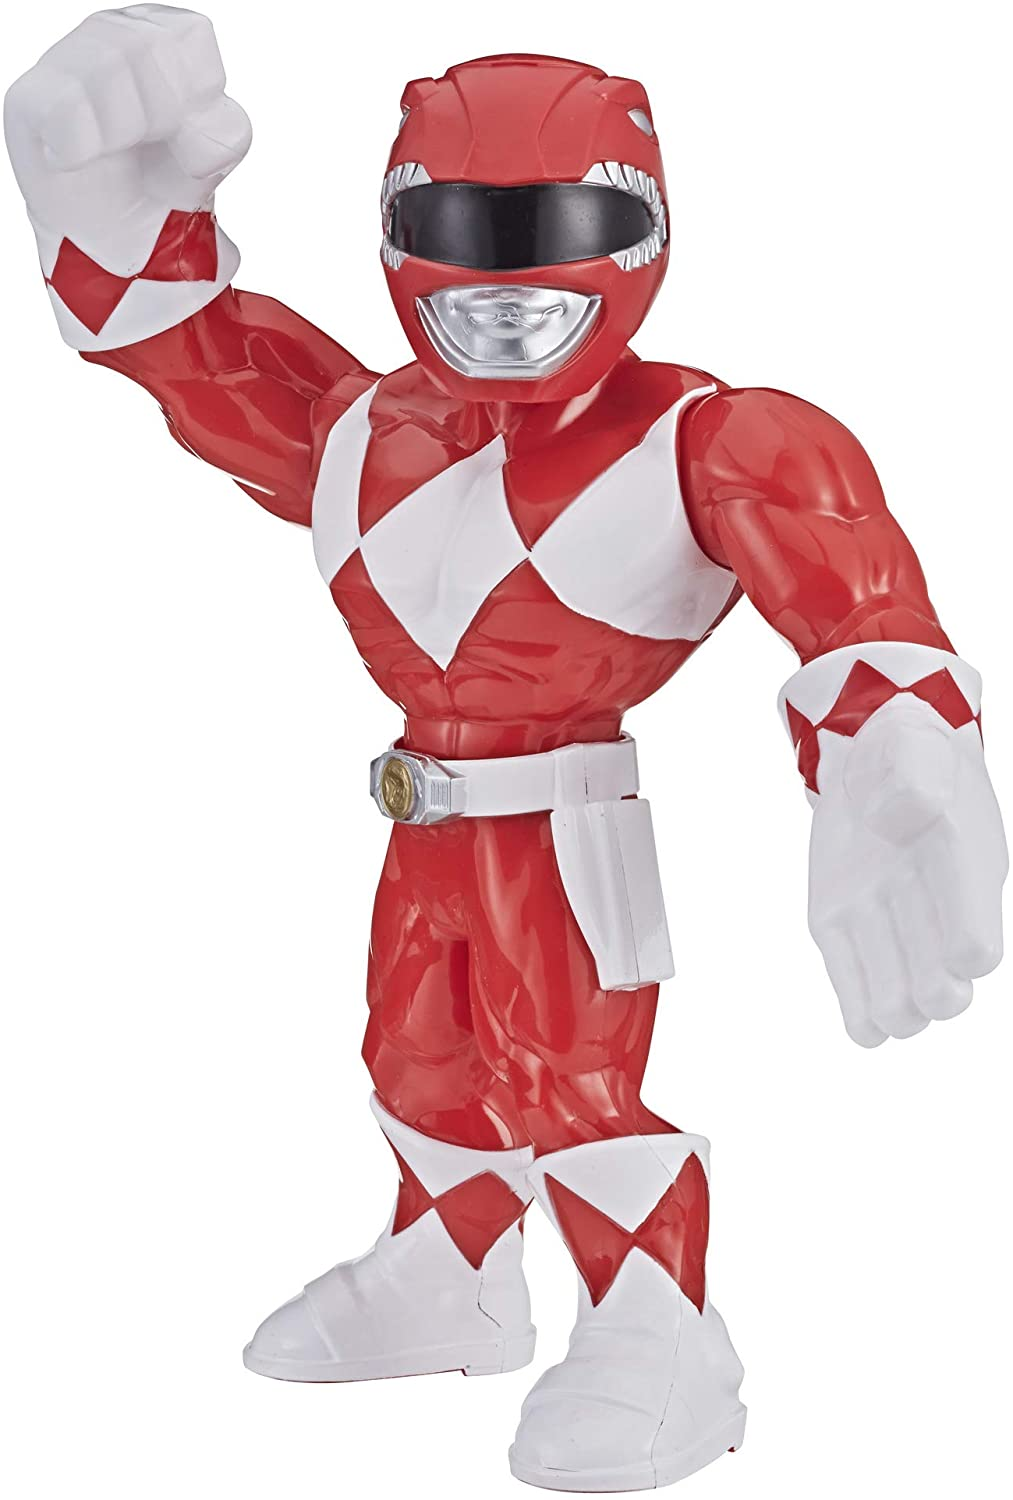 Power Rangers - Red Ranger  Mega Mighties - Playskool - HasbroE5869